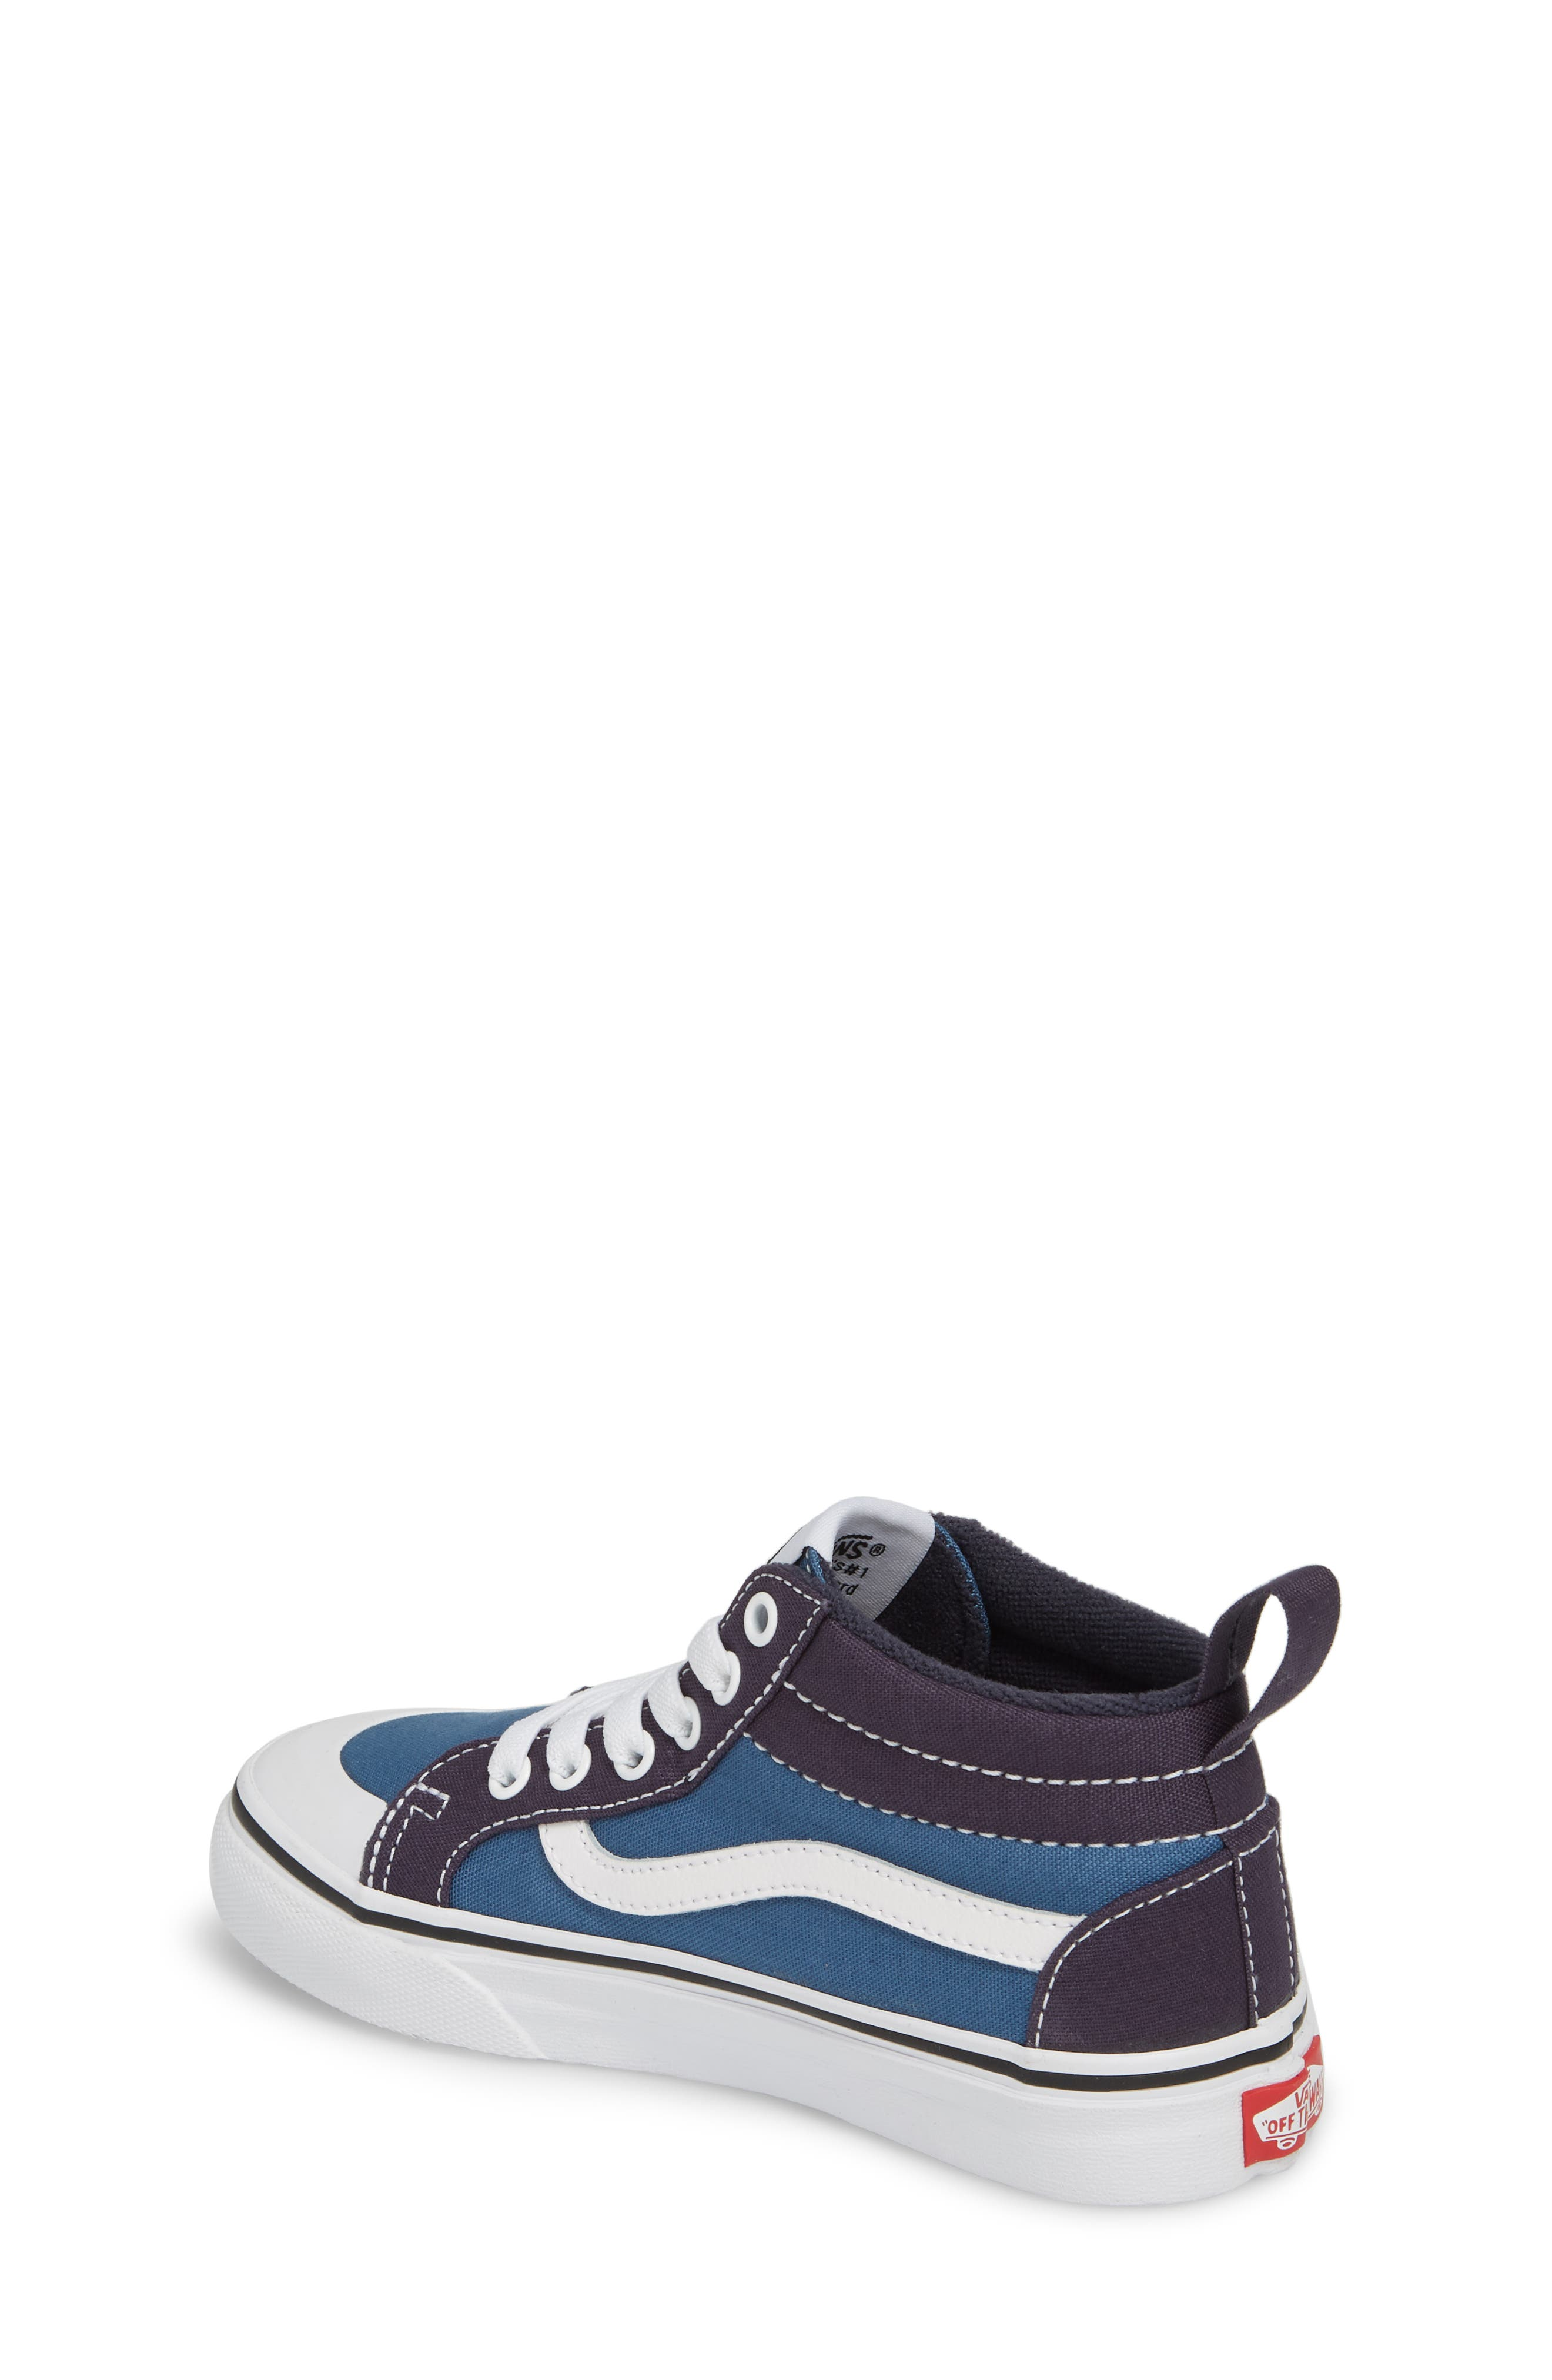 Racer Mid Elastic Lace Sneaker,                             Alternate thumbnail 2, color,                             Navy/ Navy